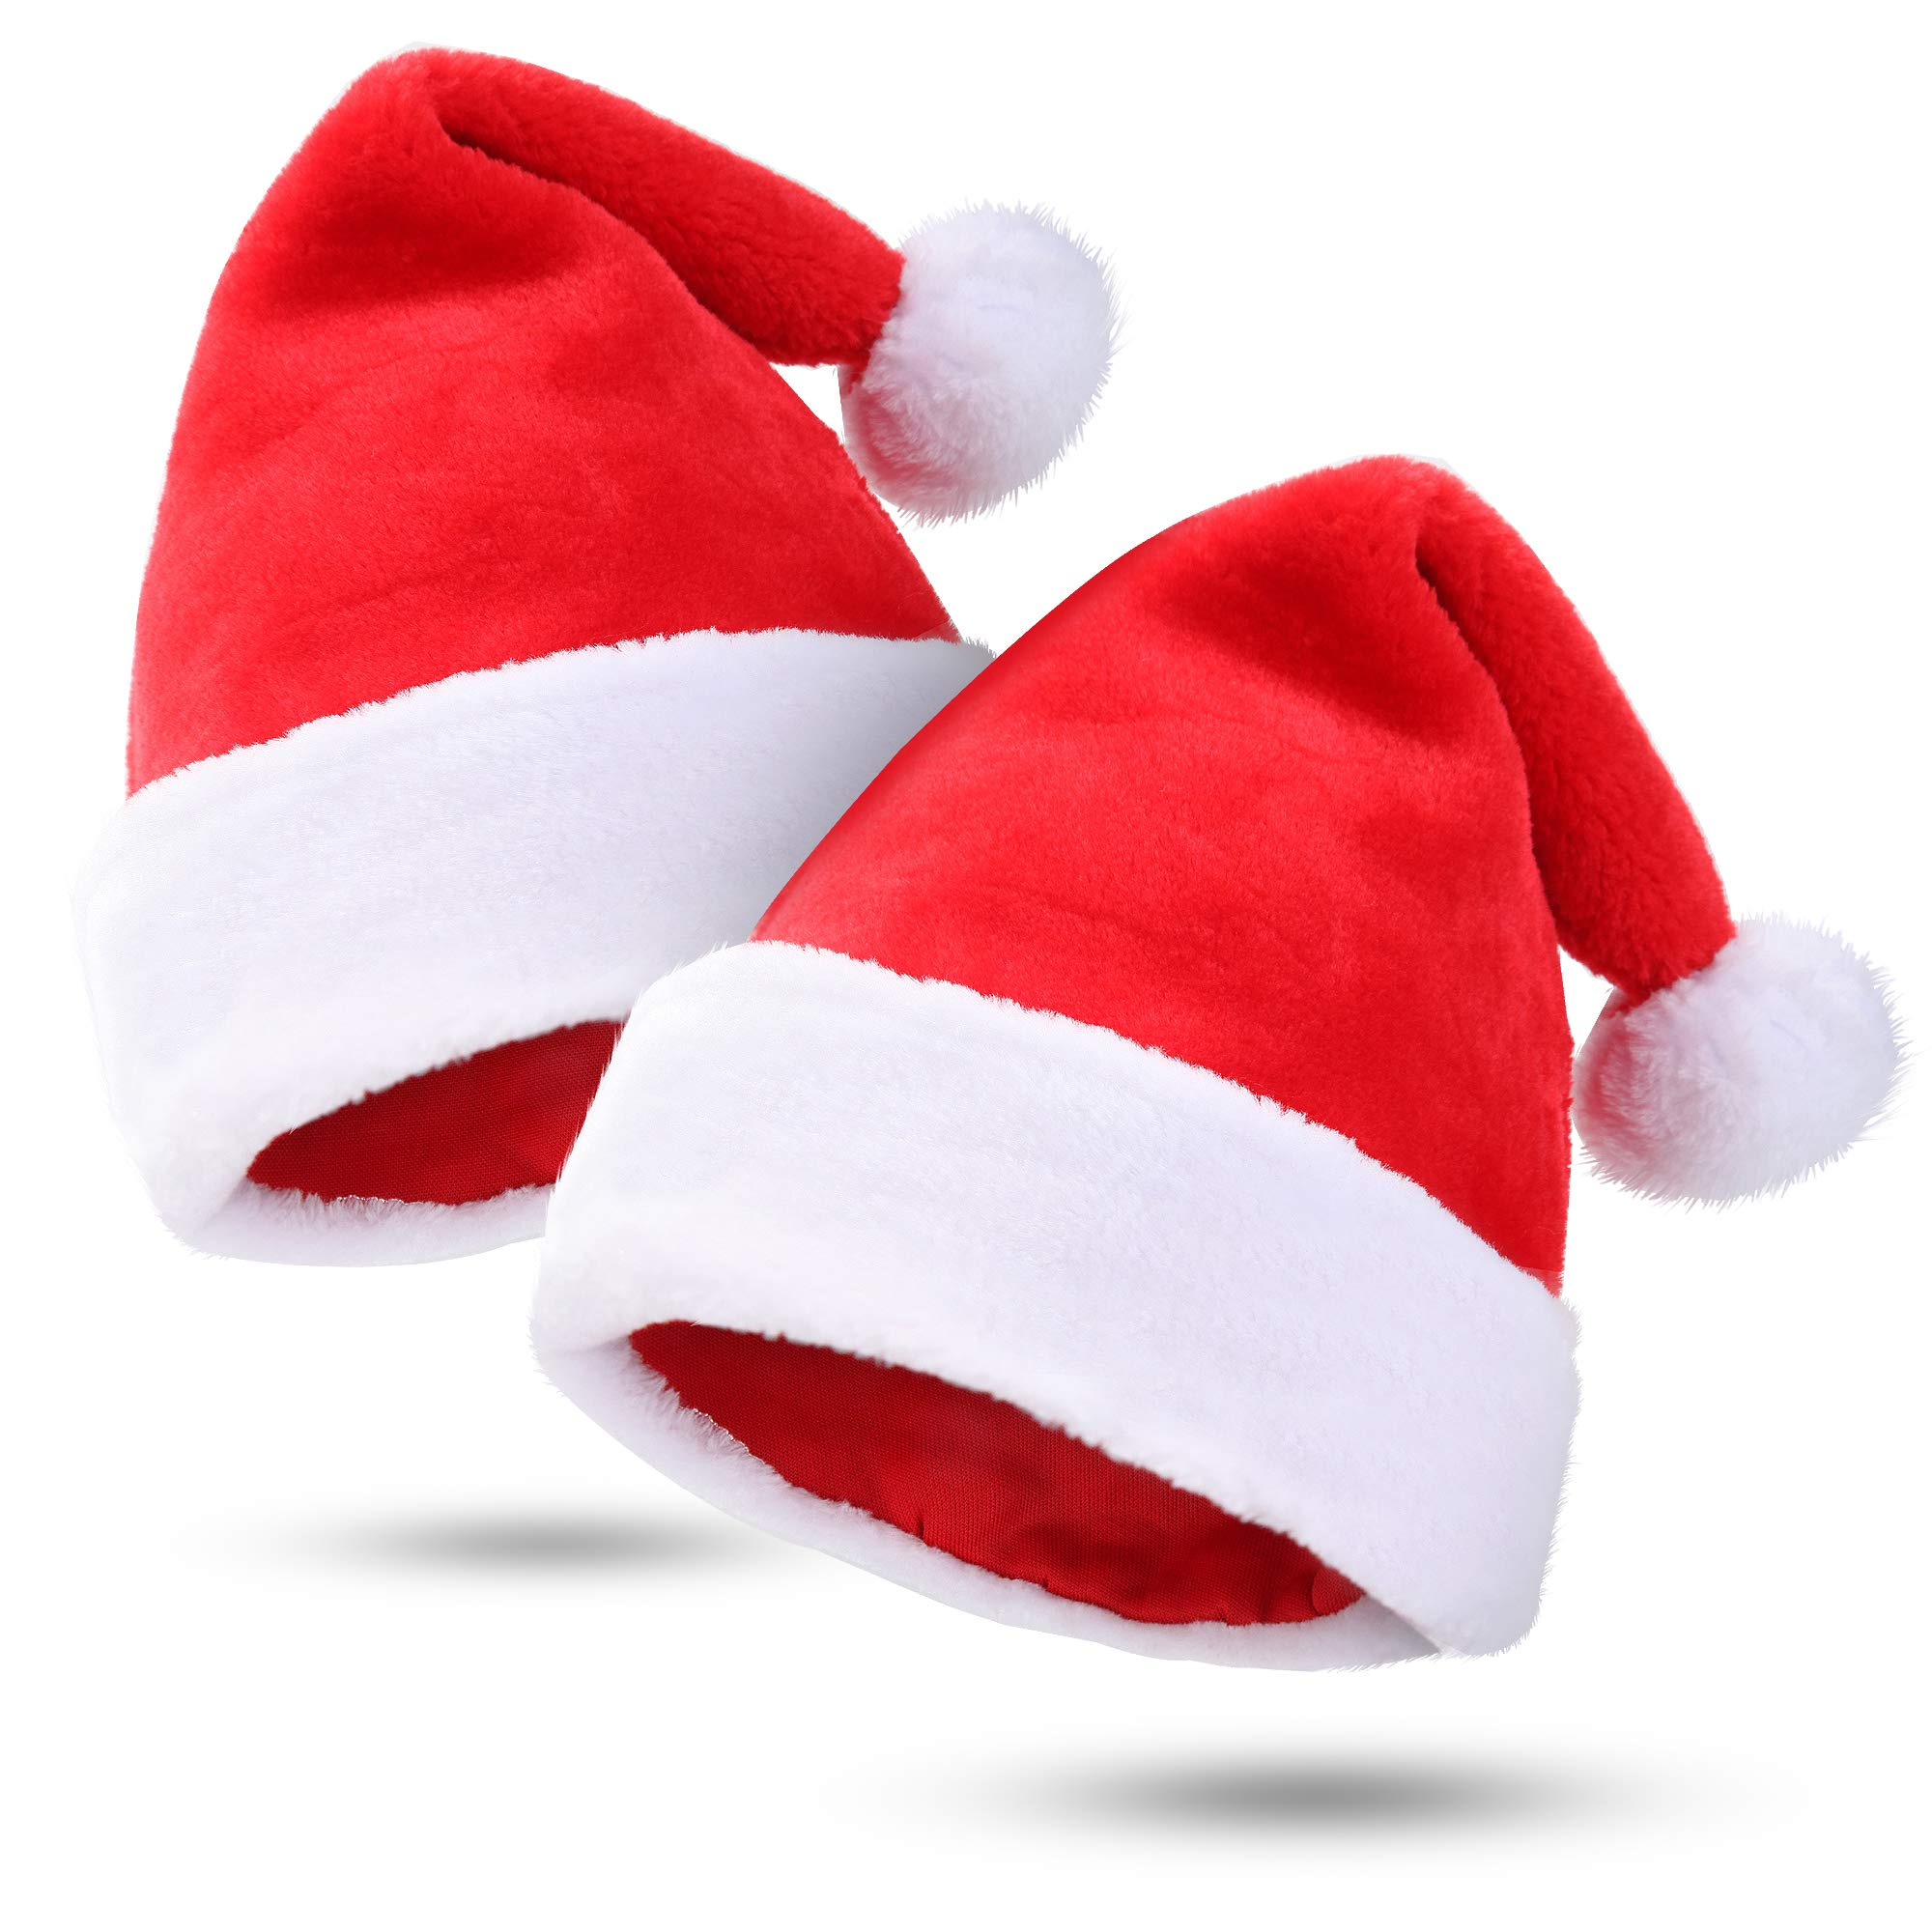 Kederwa 2 Pack Christmas Hats Thicken Santa Hats Plush and Soft Party Hats for Christmas Costume Party and Holiday Event by Kederwa